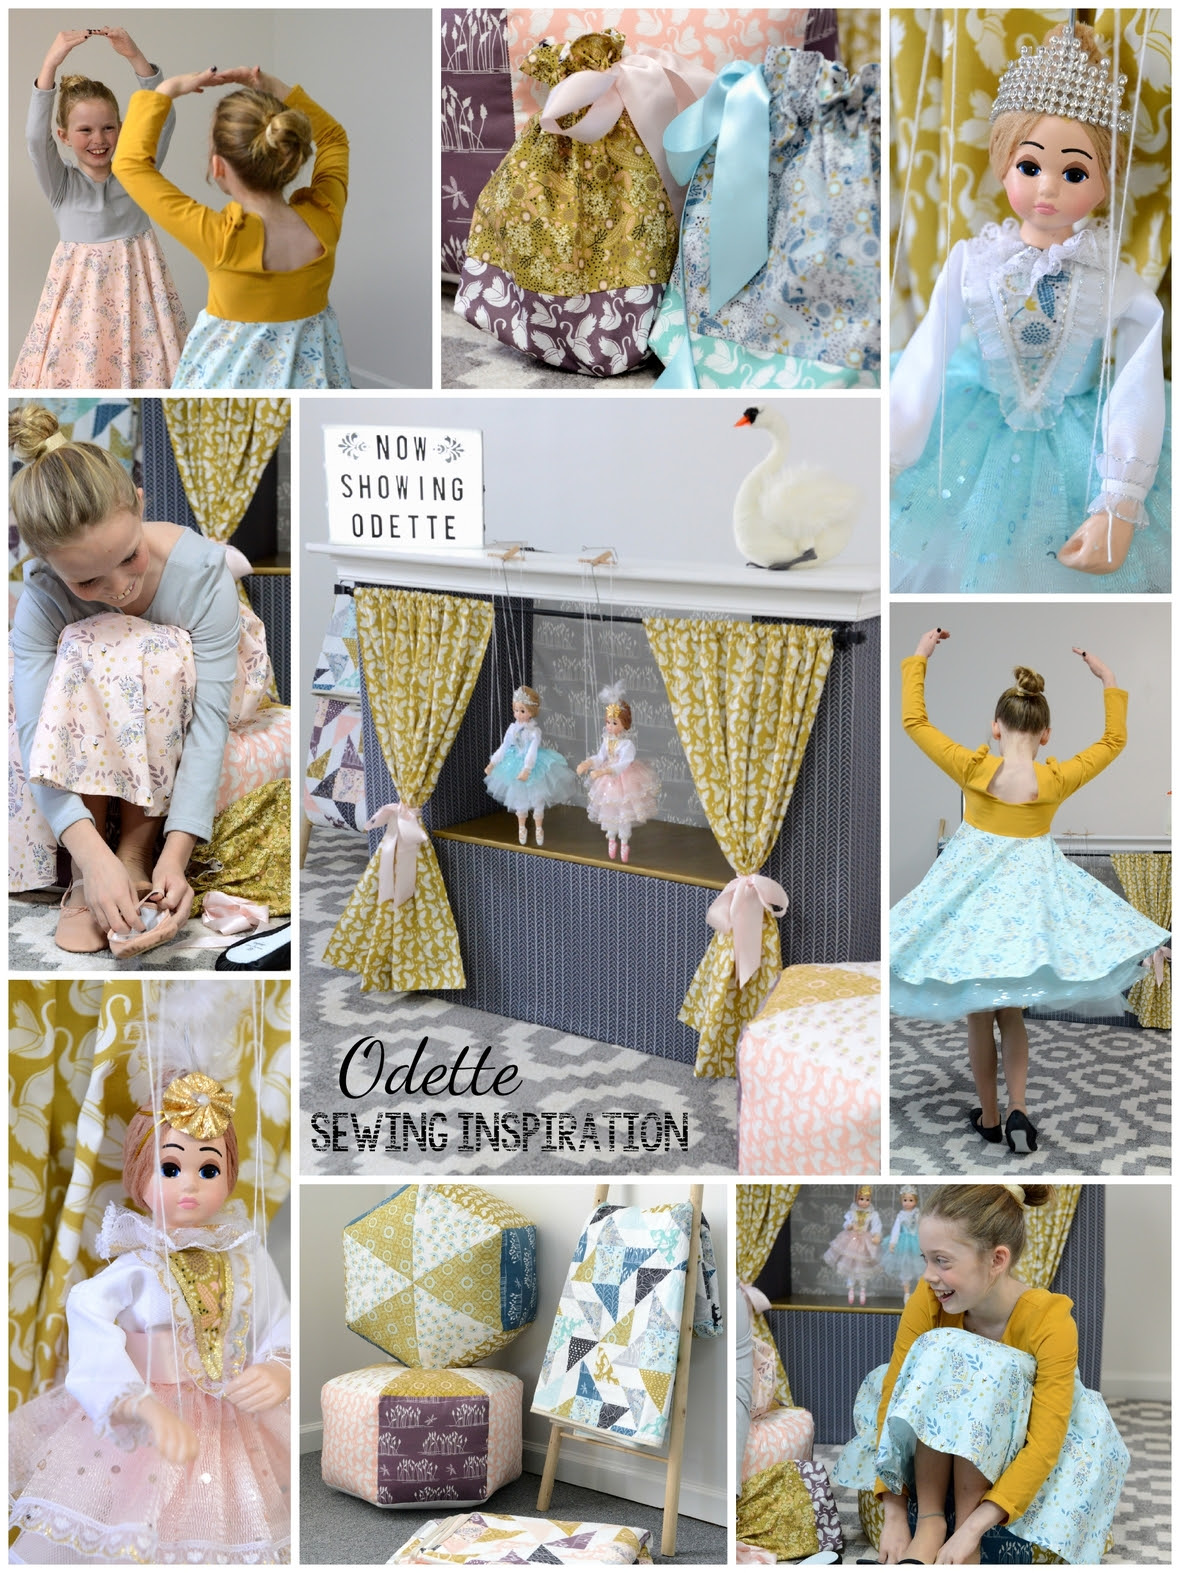 Odette Fabric Sewing Inspiration Collage